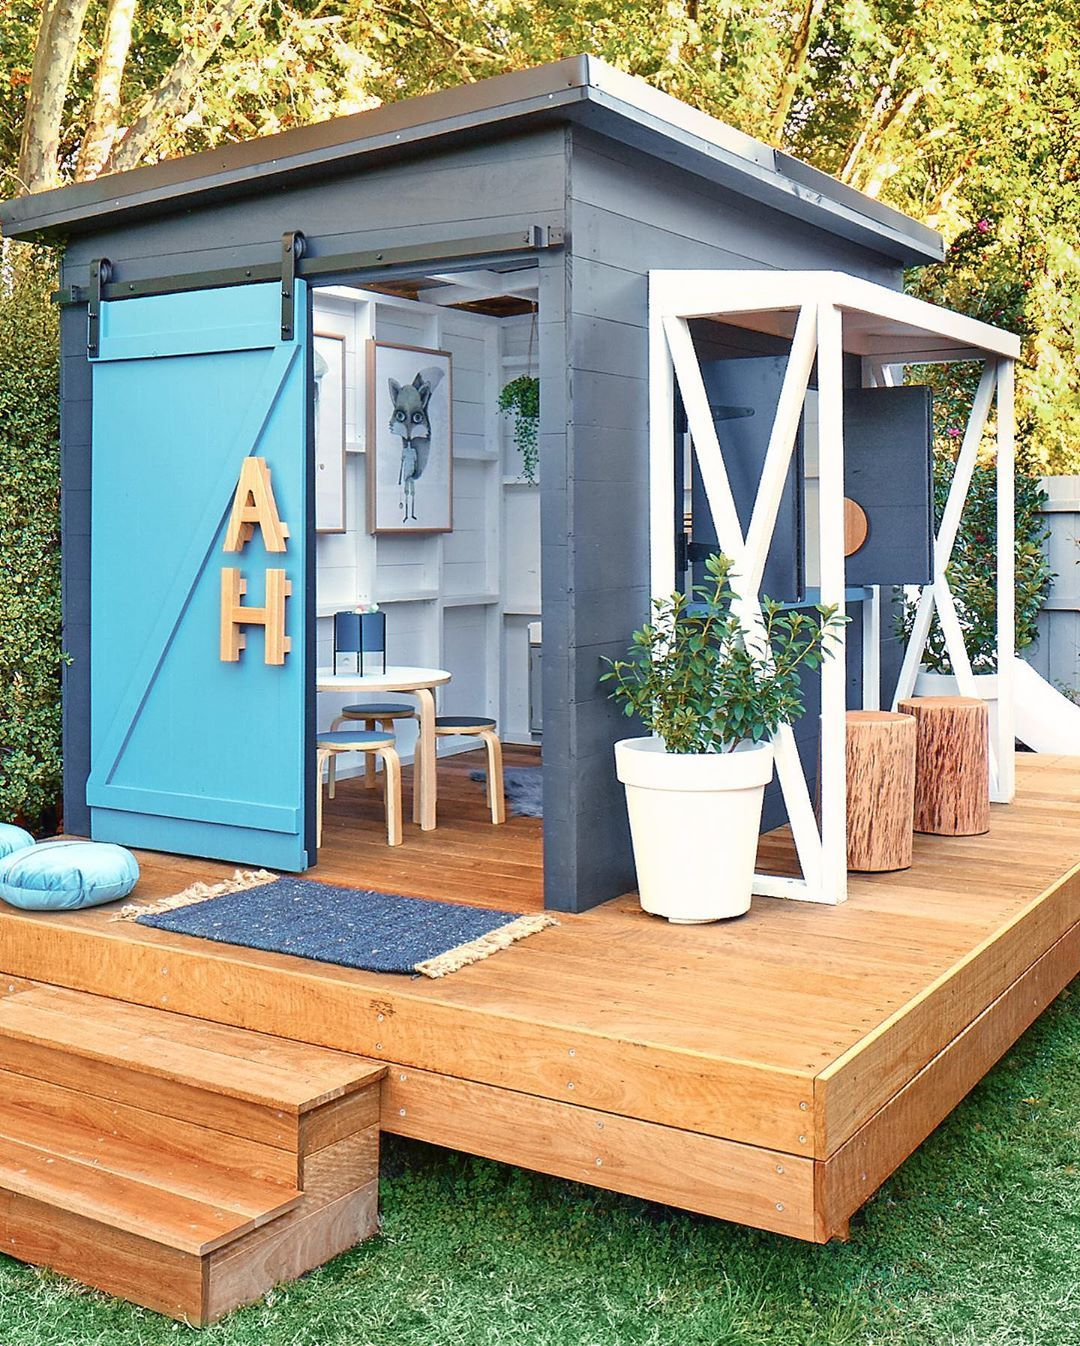 Nadia Bartel On Instagram Long Overdue Posting The Boys Cubby Castleandcubby We Took These Photos Early Last Year But Then Life Got A Little Crazy Henley Wa